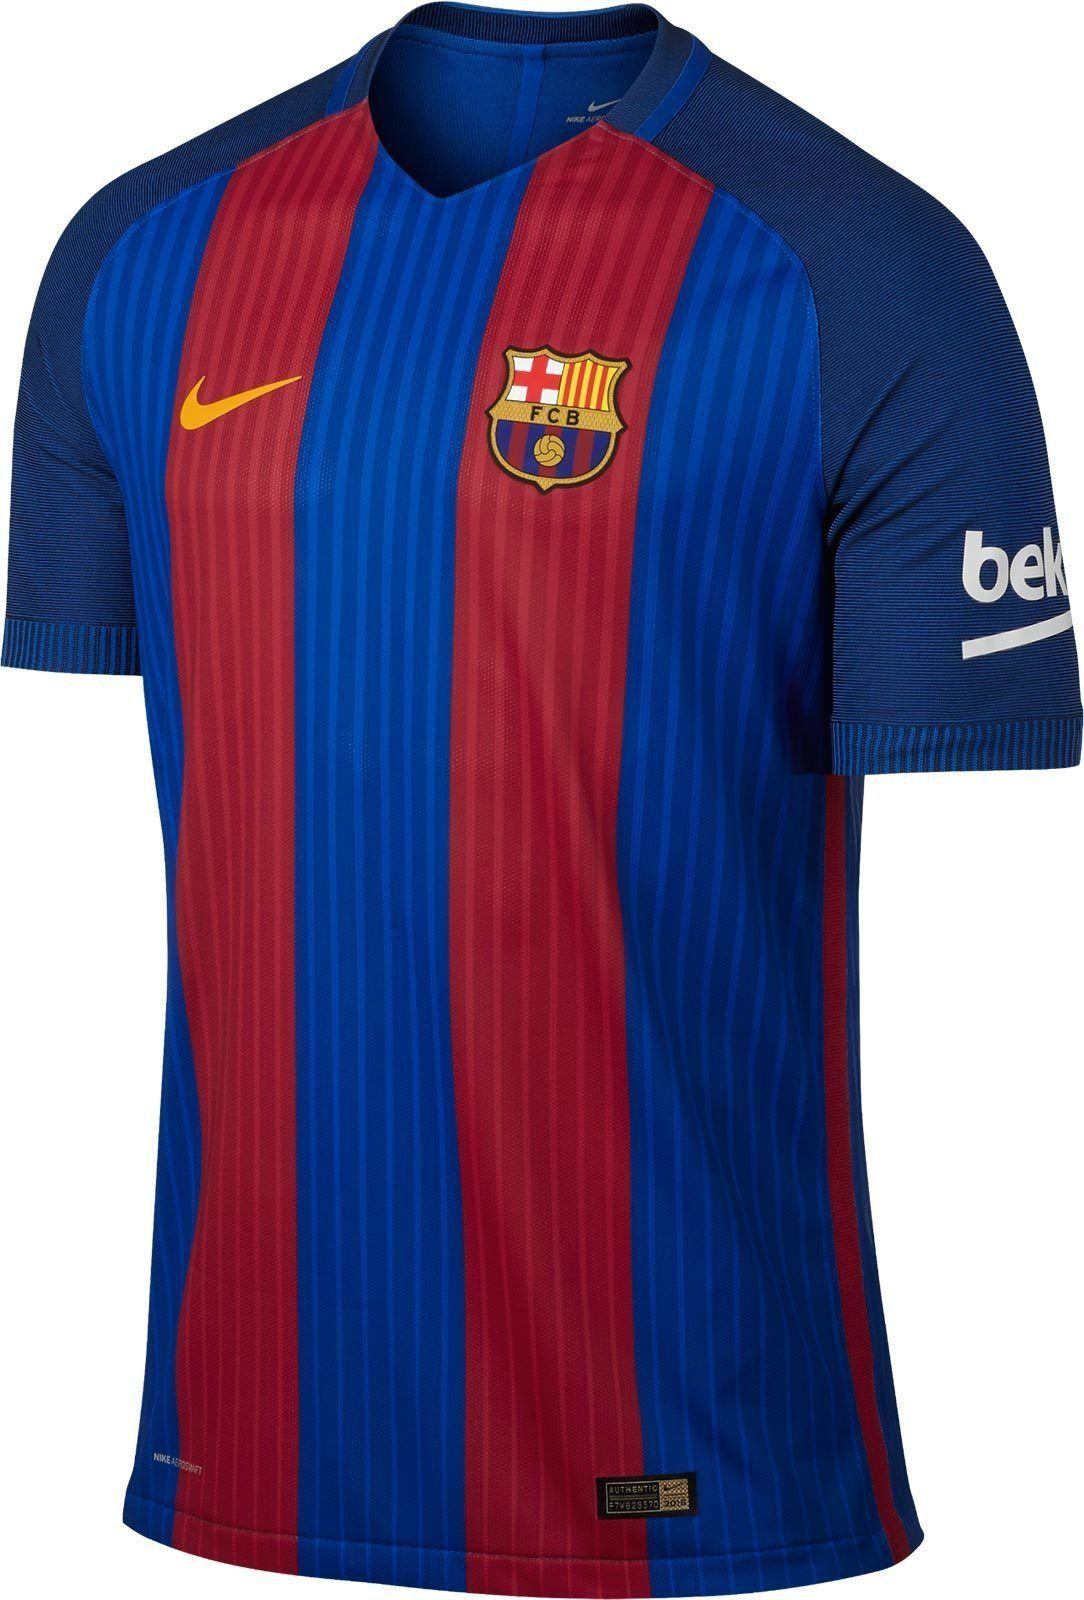 NIKE FC BARCELONA AUTHENTIC VAPOR MATCH HOME JERSEY 2016 17 ENGINEERED  SPEED The 2016 17 FC Barcelona Vapor Match Home Men s Soccer Jersey is the  same ... e9c954232